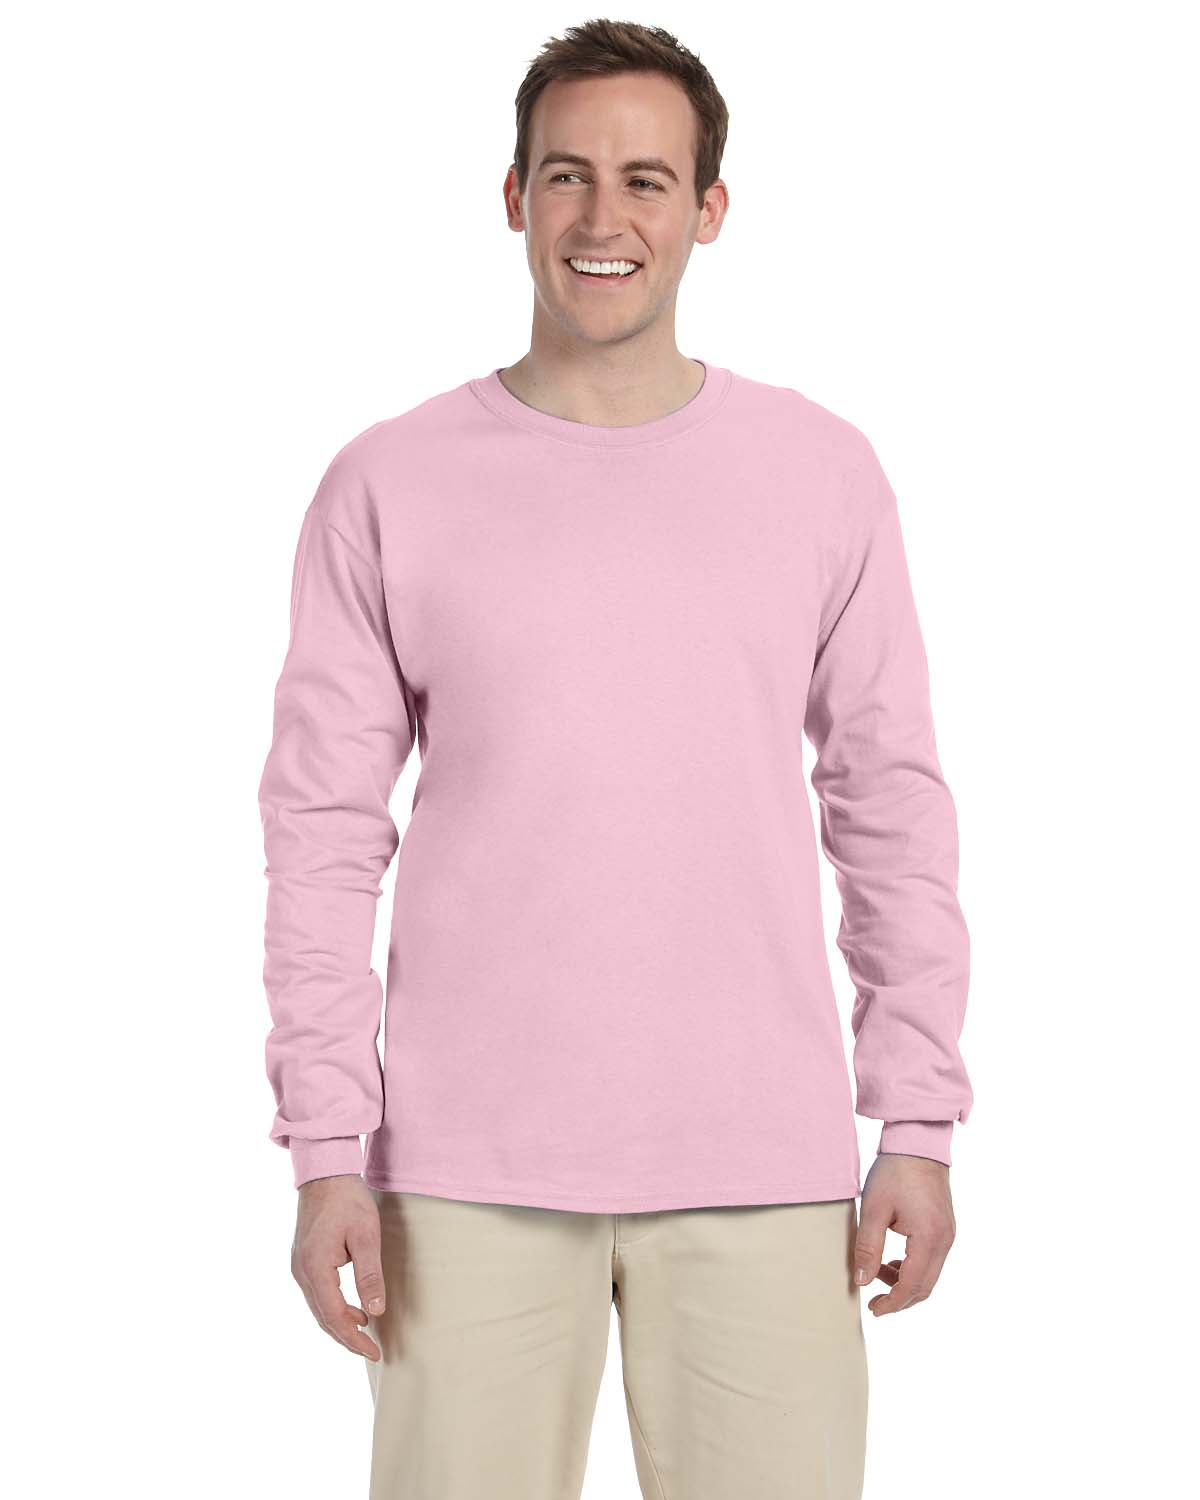 Fruit Of The Loom Men's Hd Cotton Long Sleeve Tee Shirt, 4930, S ...